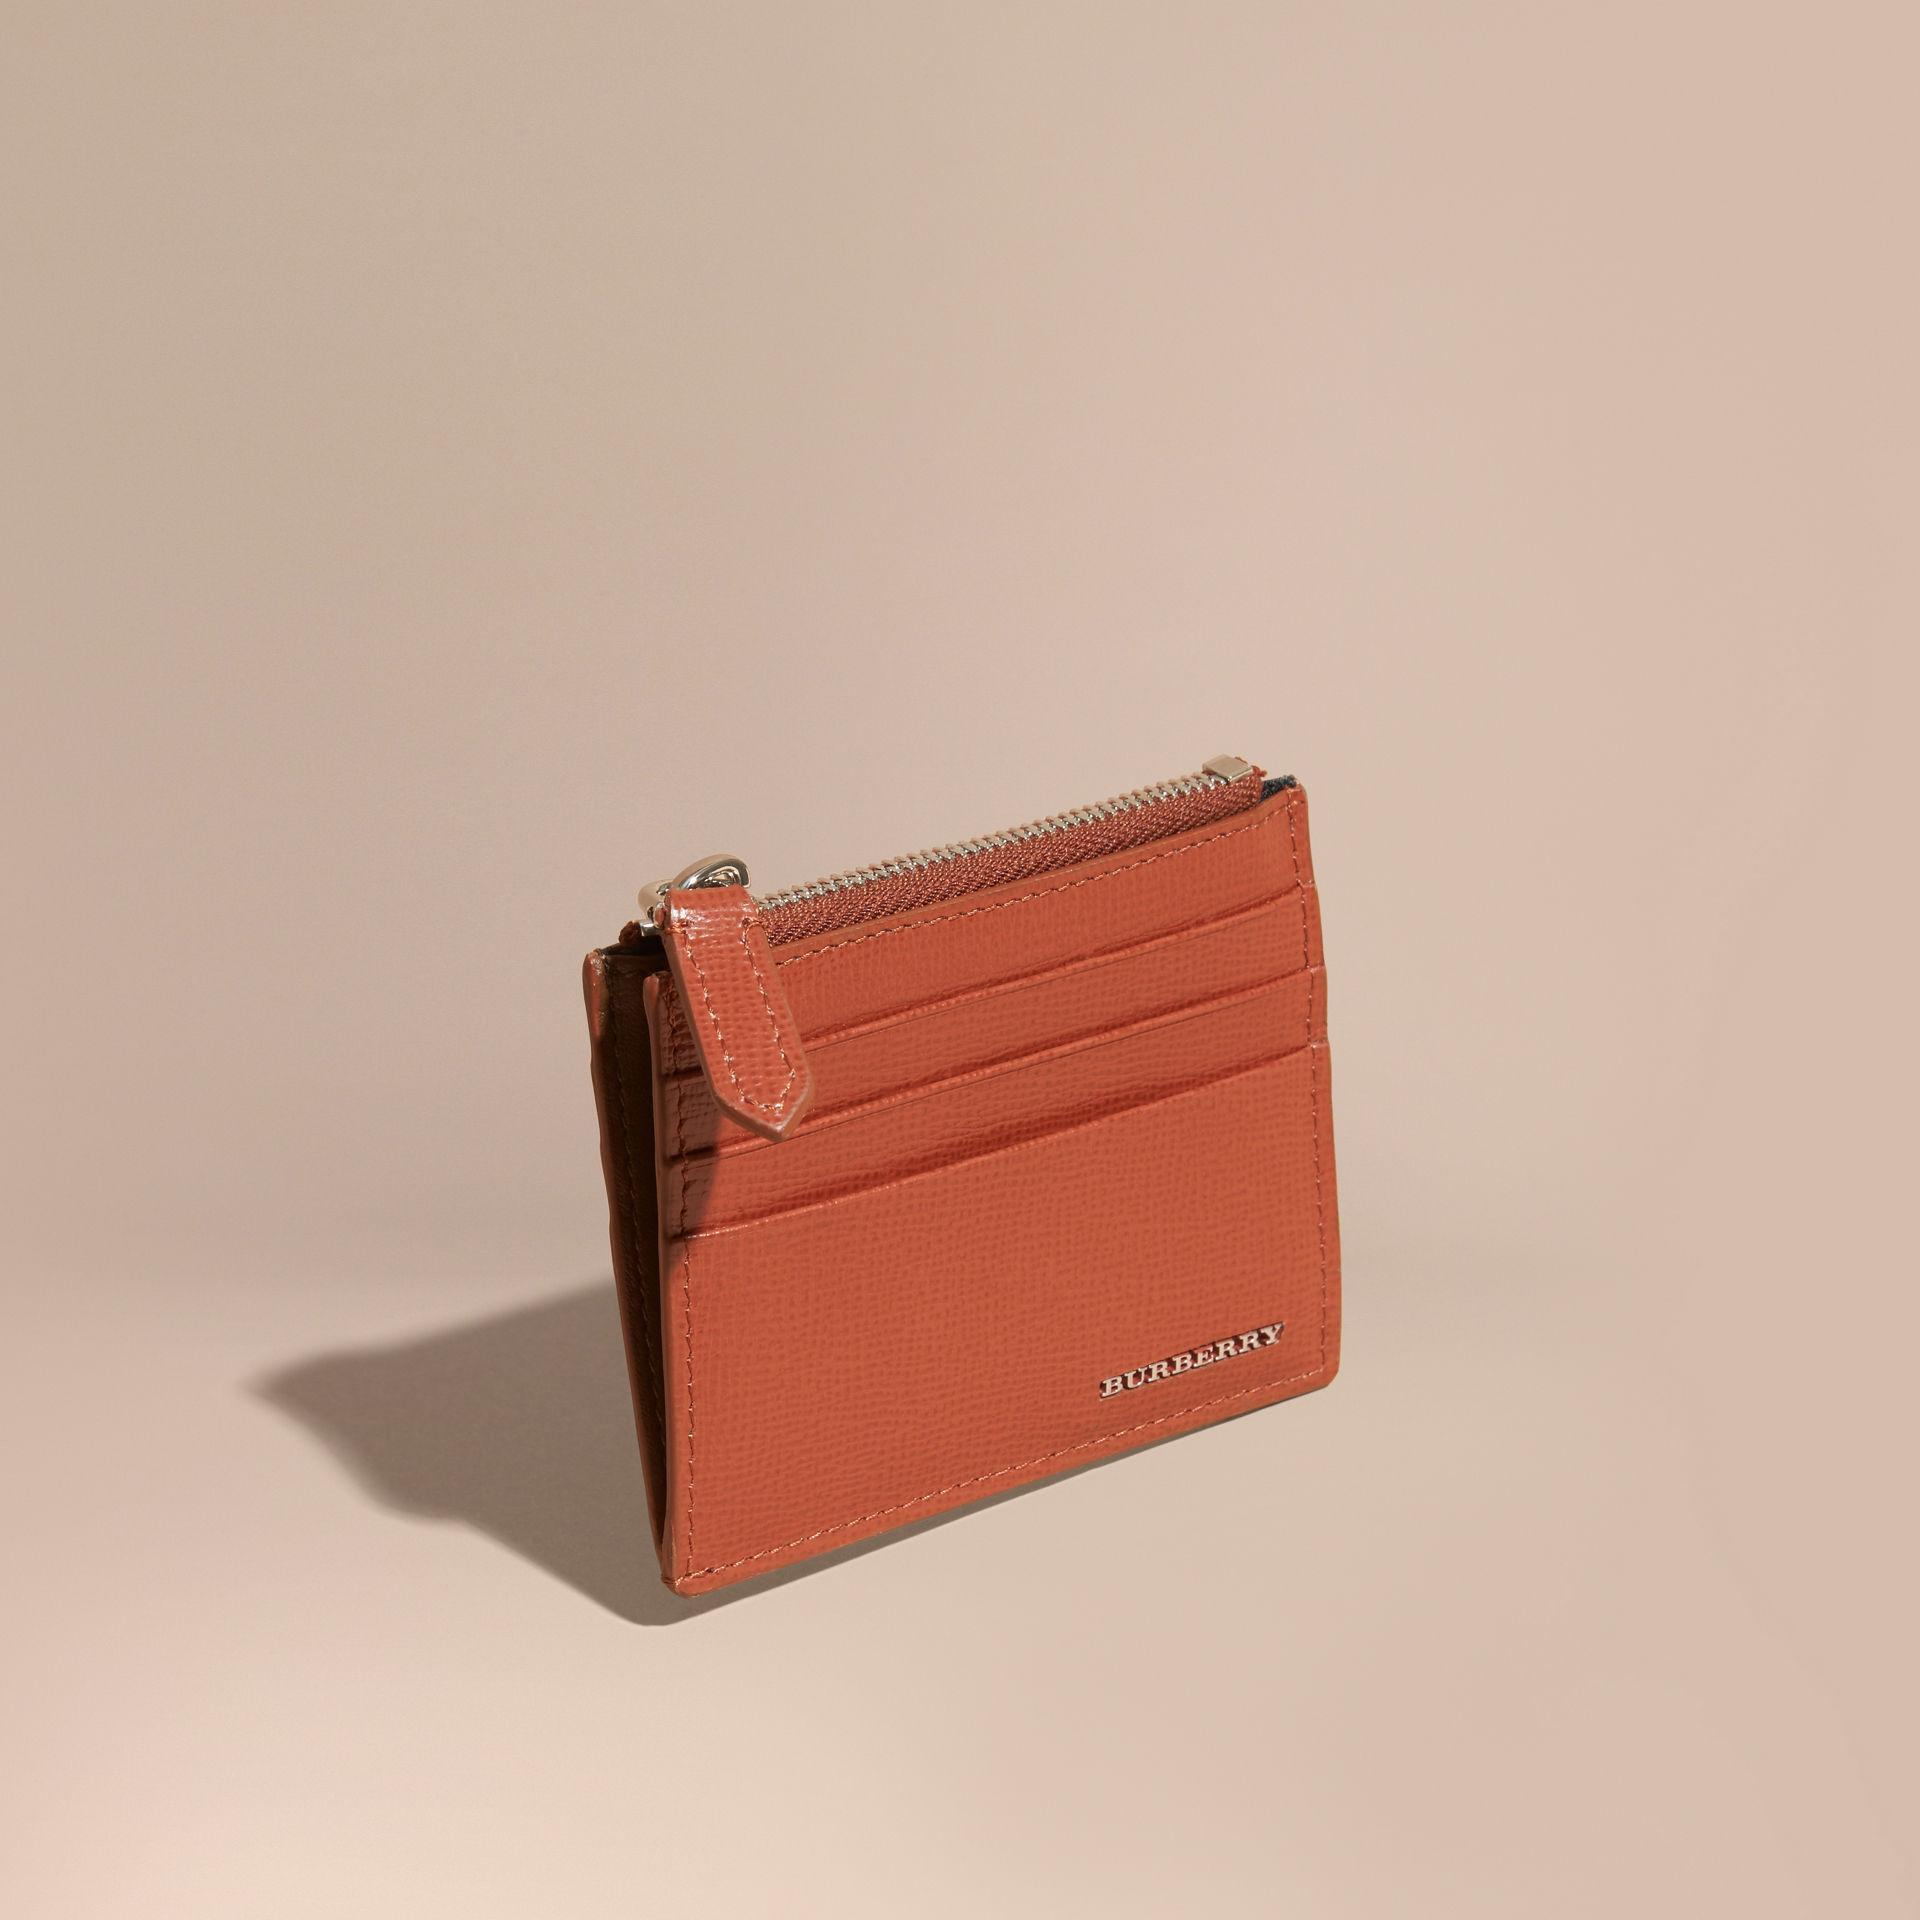 168e95bb118 Lyst - Burberry London Leather Zip-top Card Case Burnt Sienna